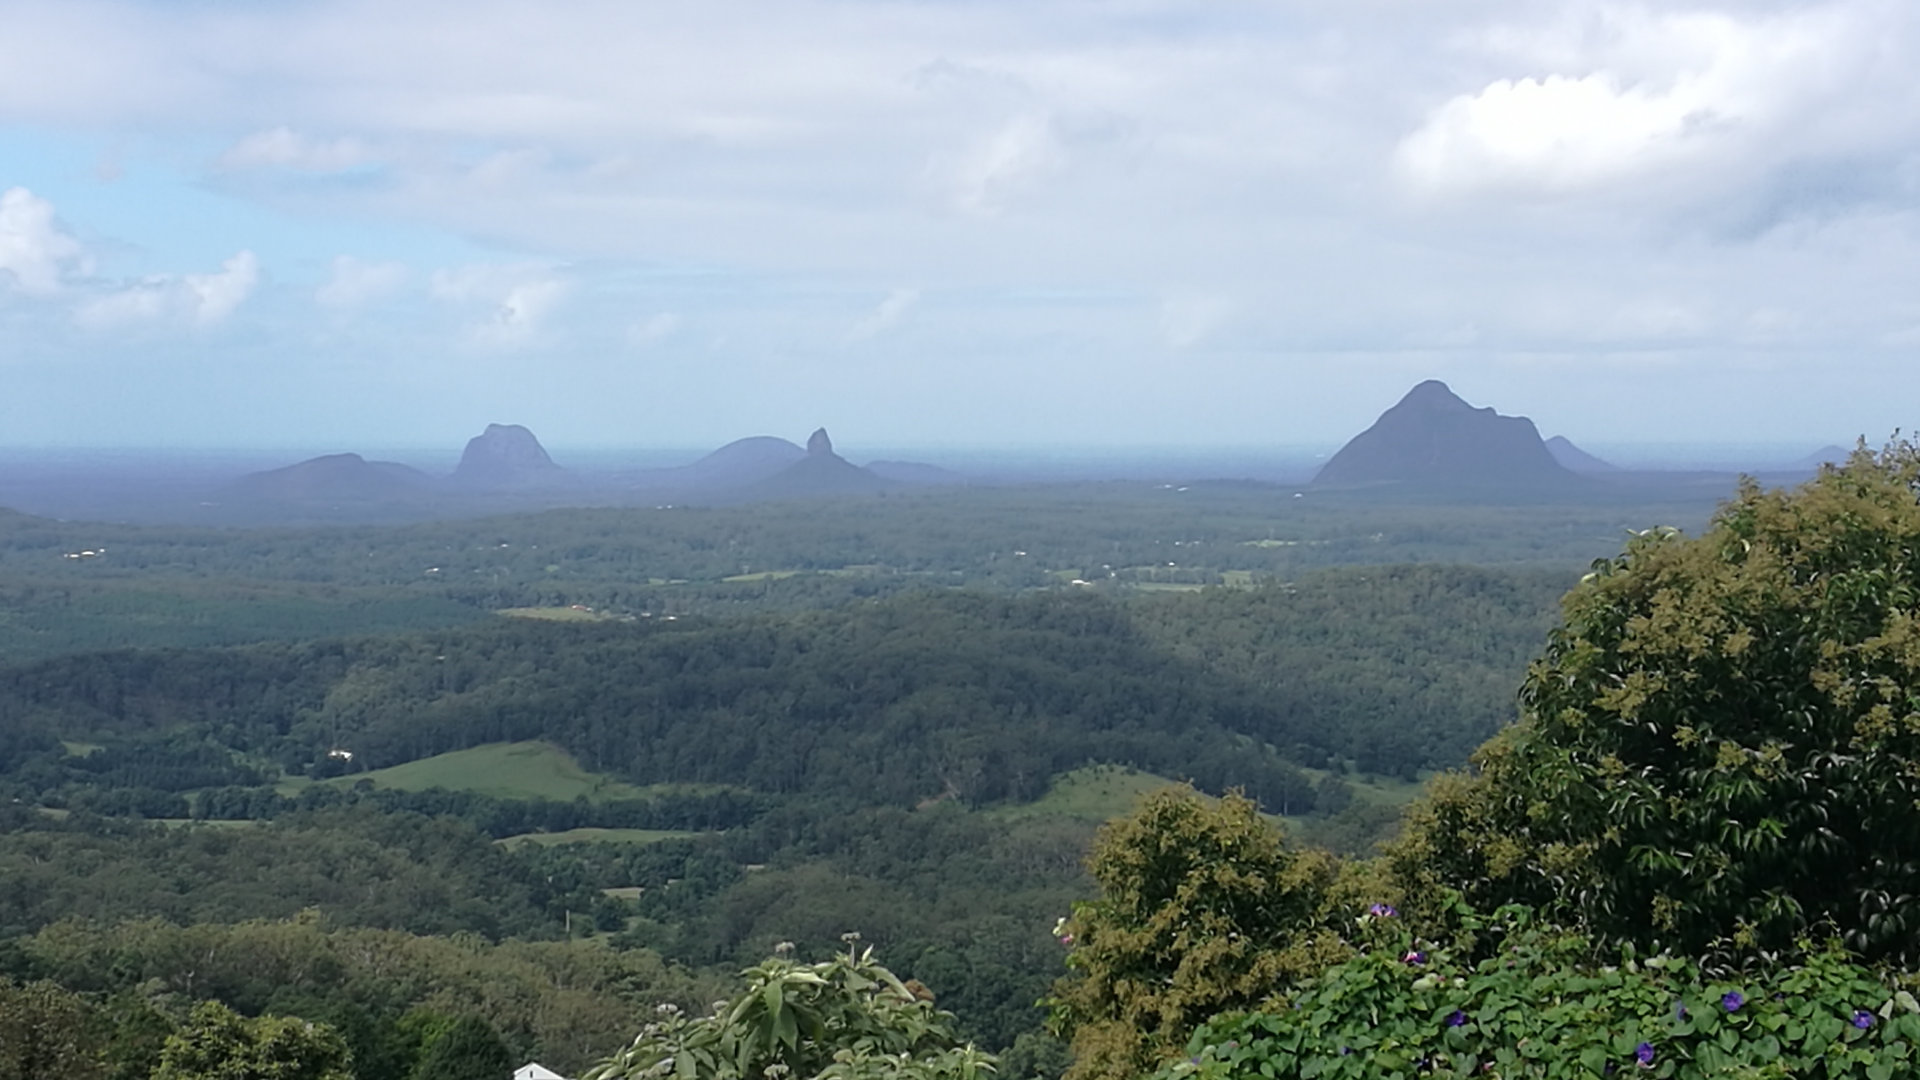 View from McCarthy's Lookout in Maleny, looking east off the Blackall Range towards the coast and the gorgeous Glasshouse Mountains